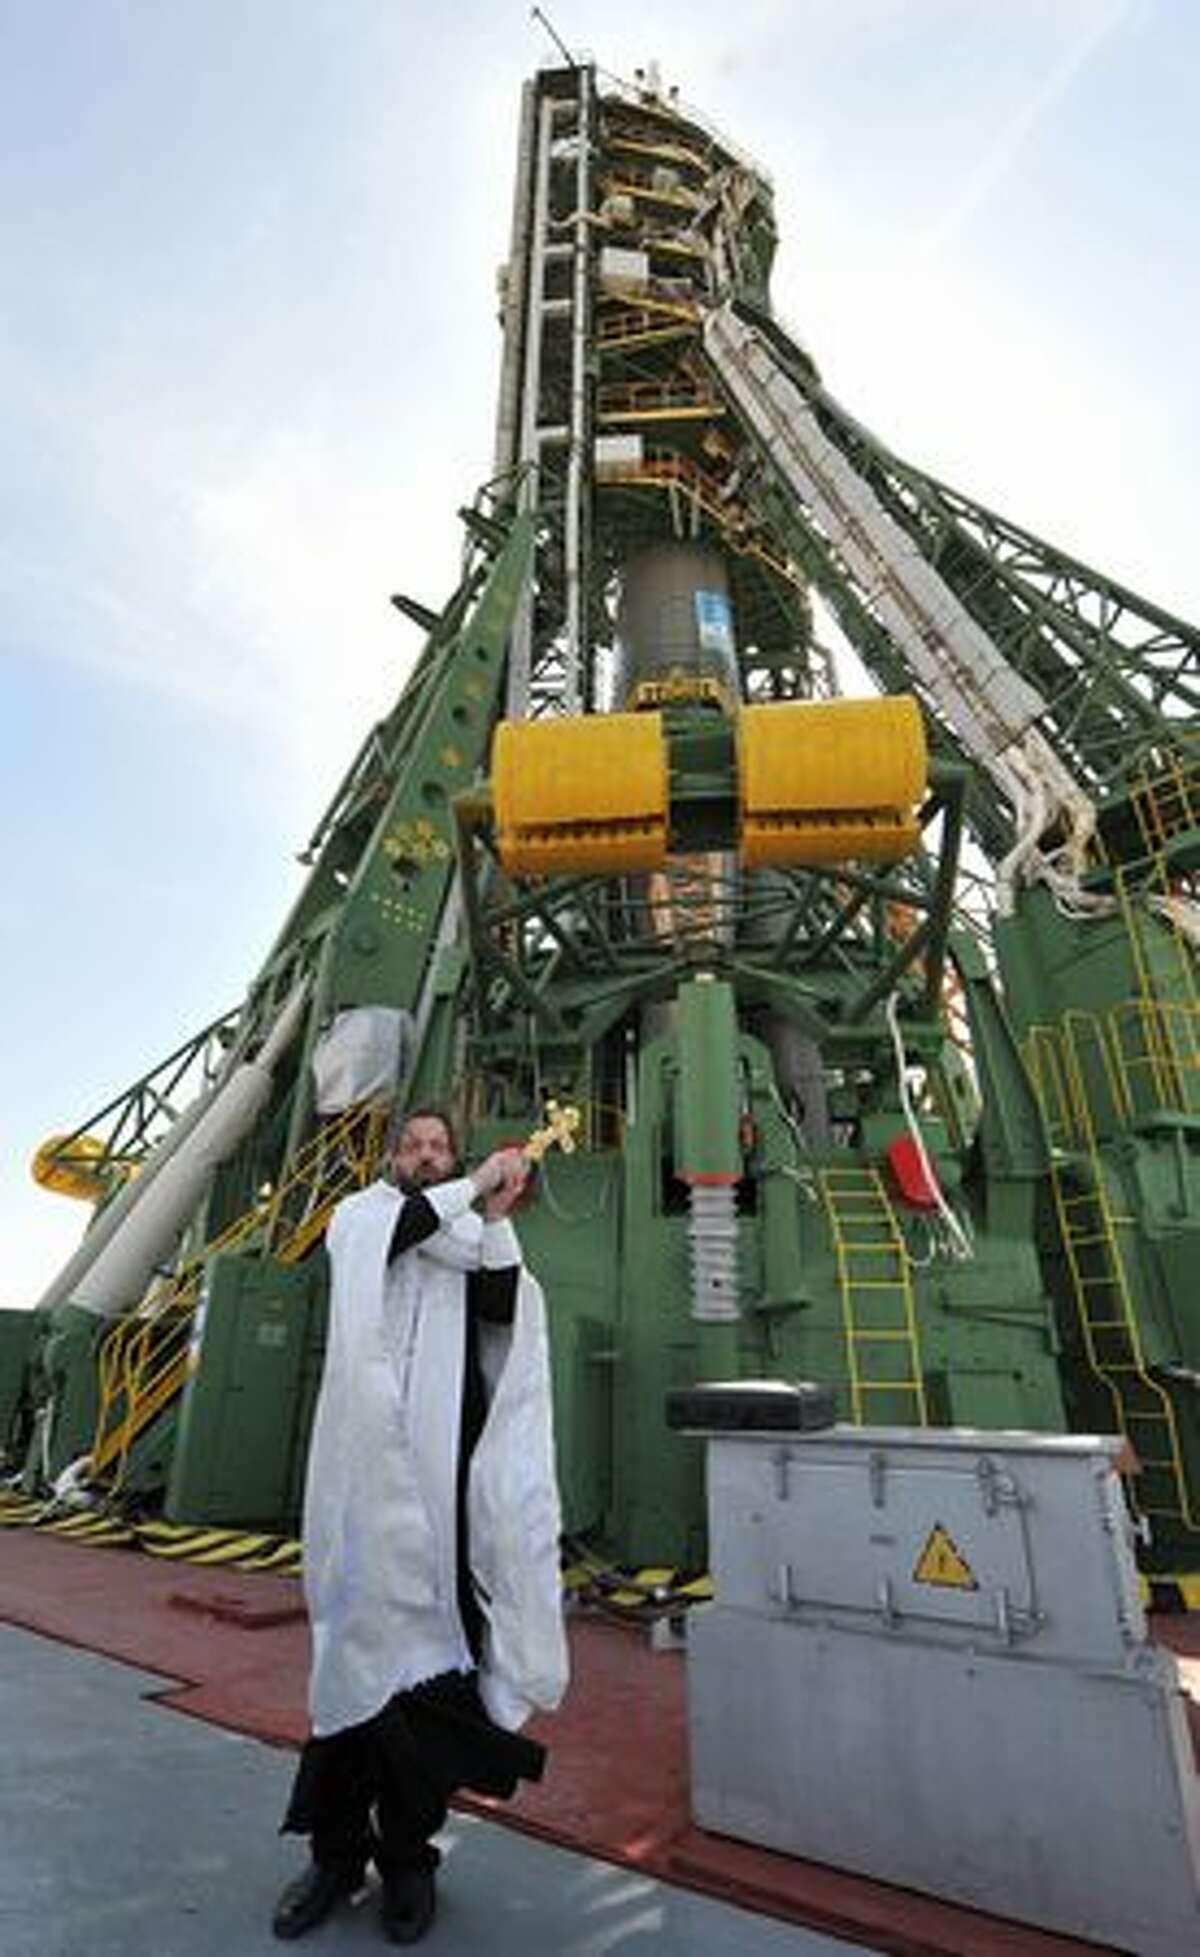 A Russian Orthodox priest blesses the Soyuz TMA-18 spacecraft at Baikonur cosmodrome, in Kazakhstan, on April 1, 2010. The crew of U.S. astronaut Tracy Caldwell Dyson, Russian cosmonaut Alexander Skvortsov and Russian cosmonaut Mikhail Kornienko are due to blast off to the International Space Station from Baikonur on April 2, 2010.